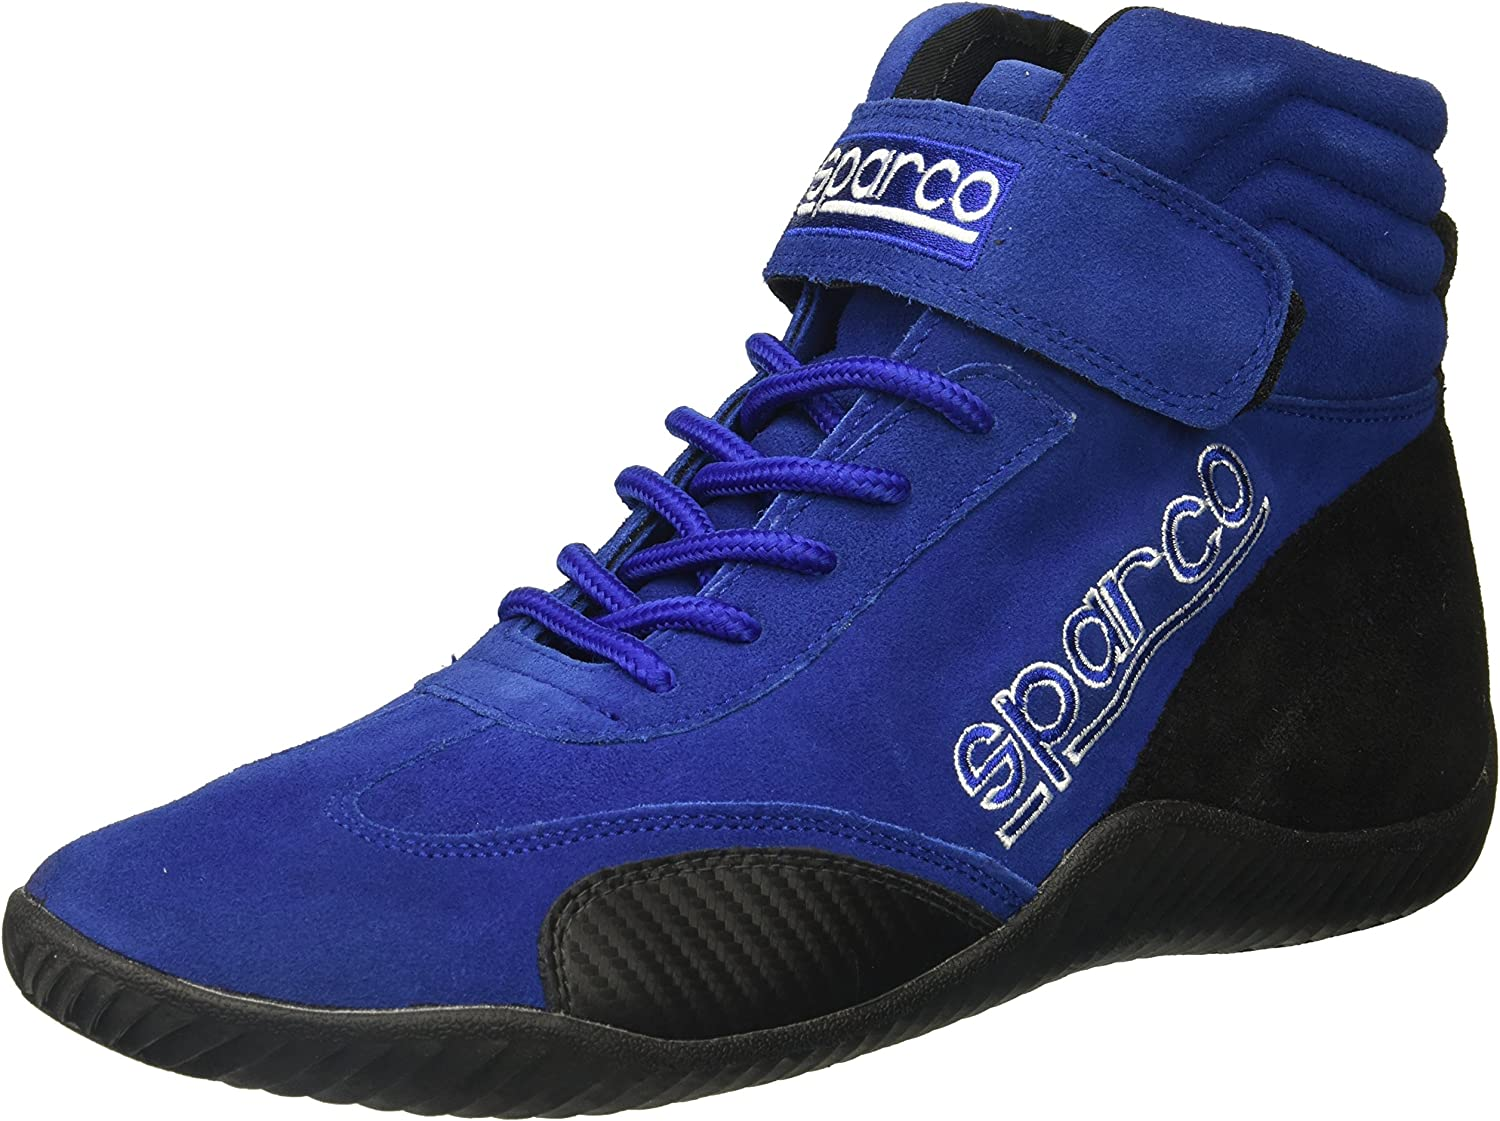 Sparco 00127012A Race Competition Shoes